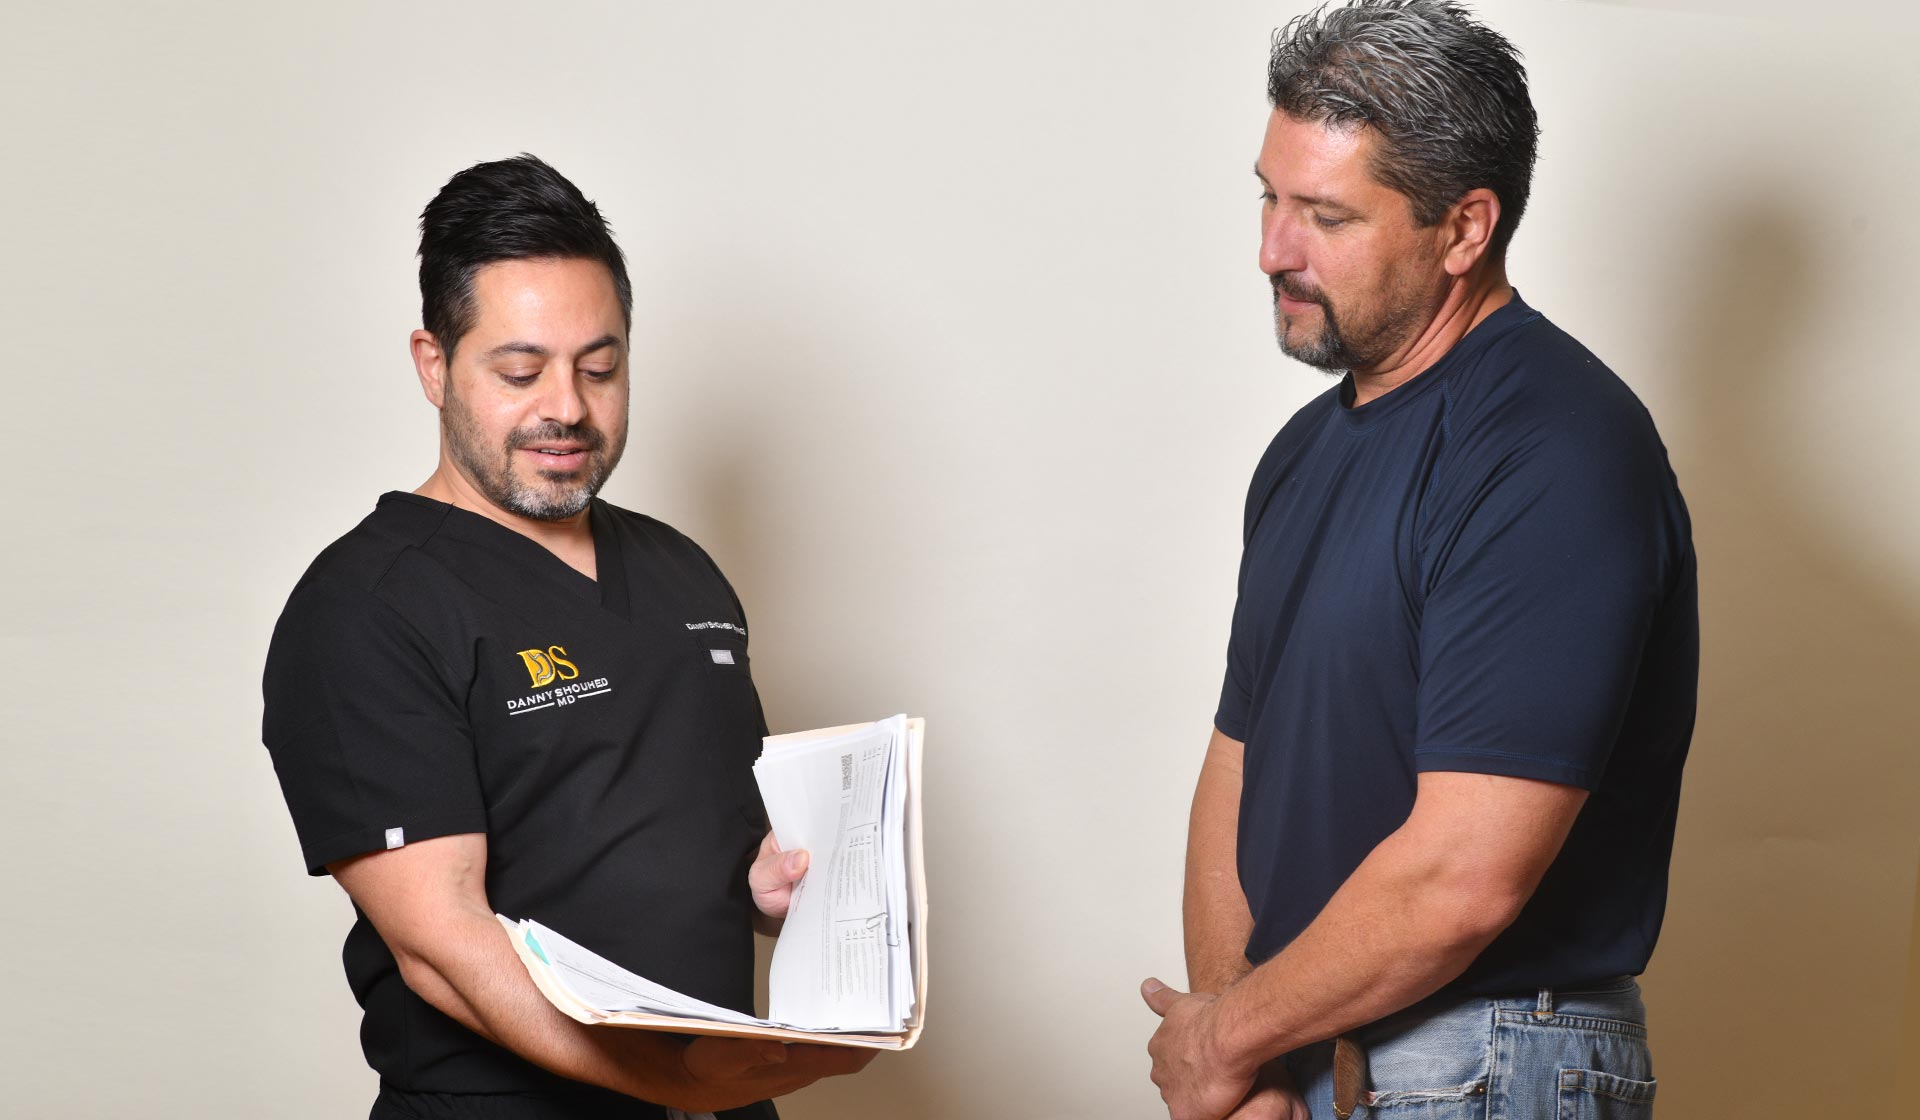 Danny Shouhed MD with his patient.